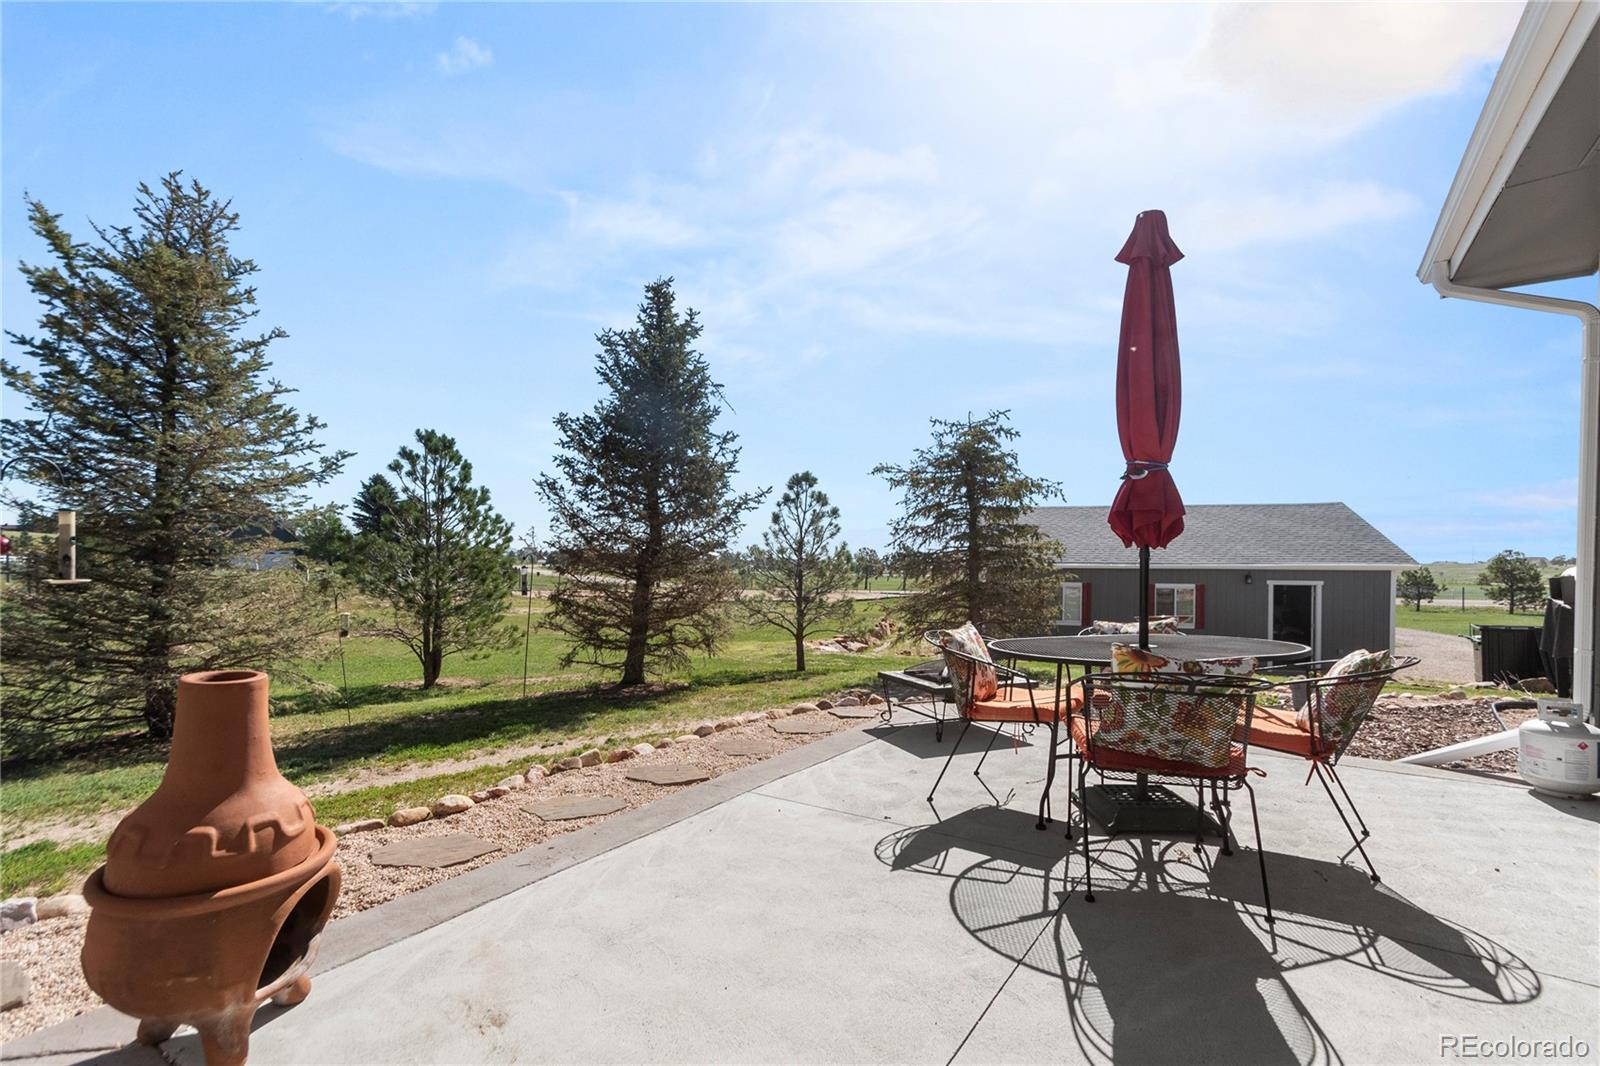 MLS# 7089085 - 33 - 13885 Halleluiah Trail, Elbert, CO 80106